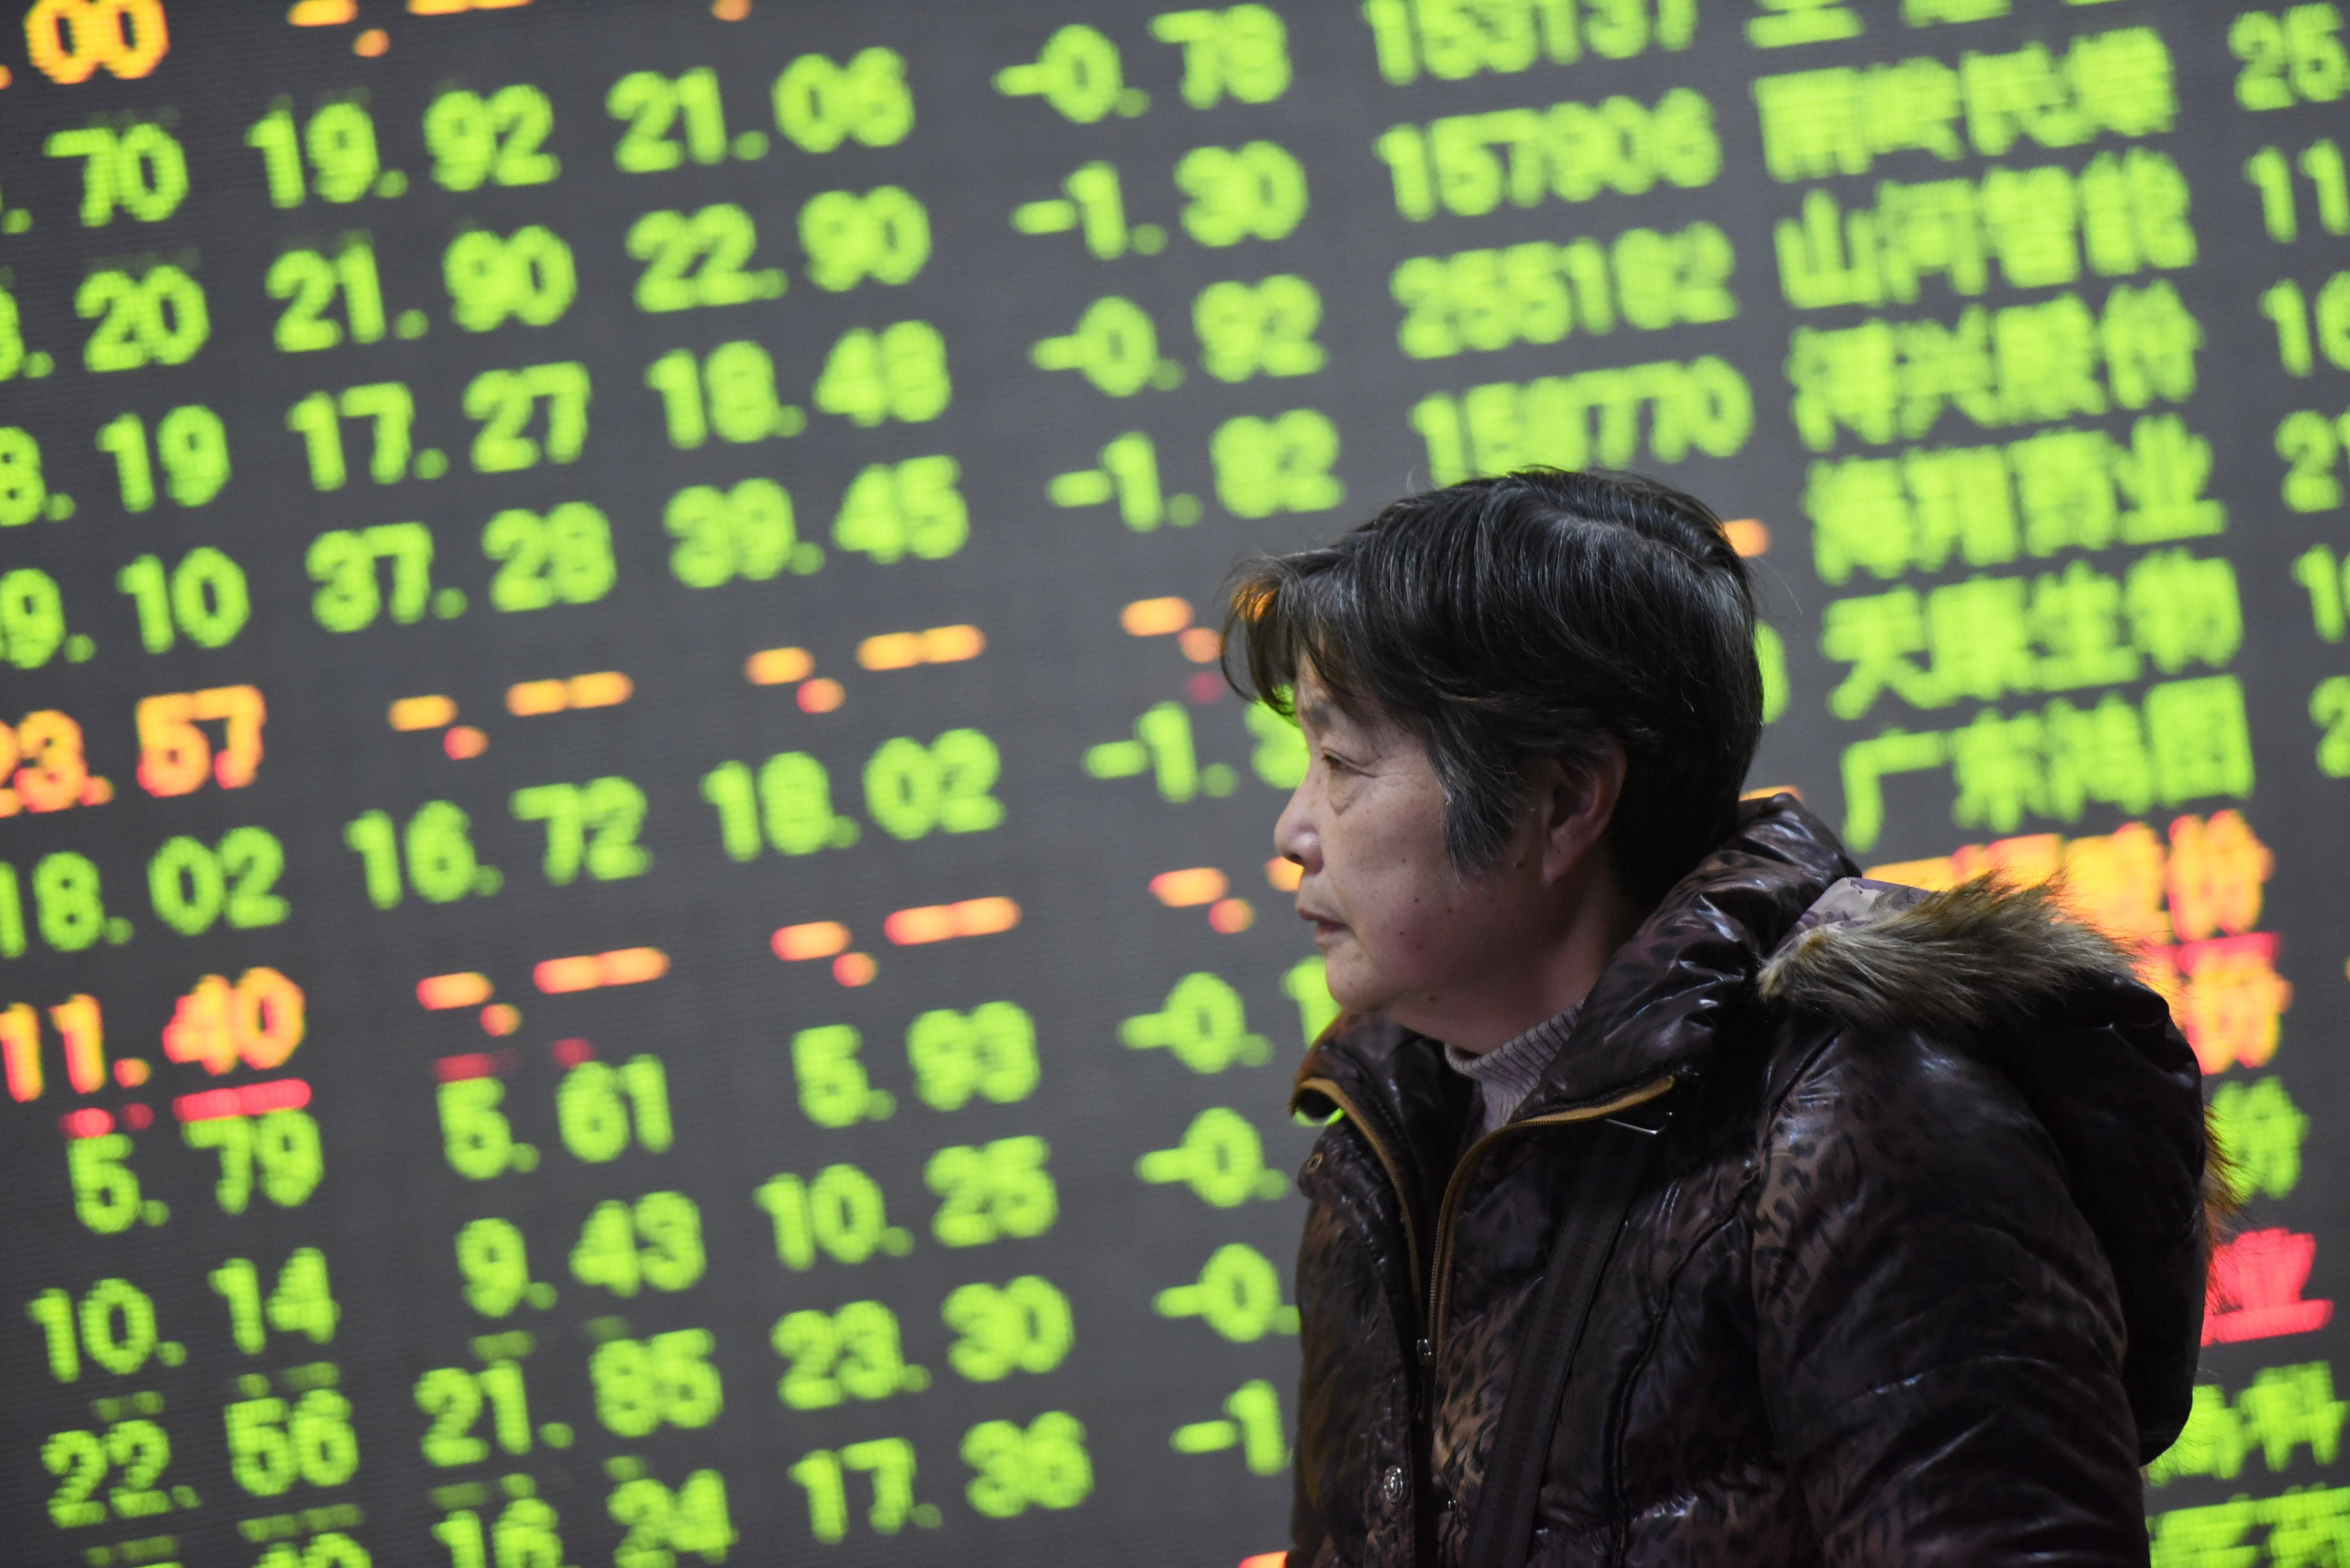 Shanghai Composite Index Drops Nearly 4%